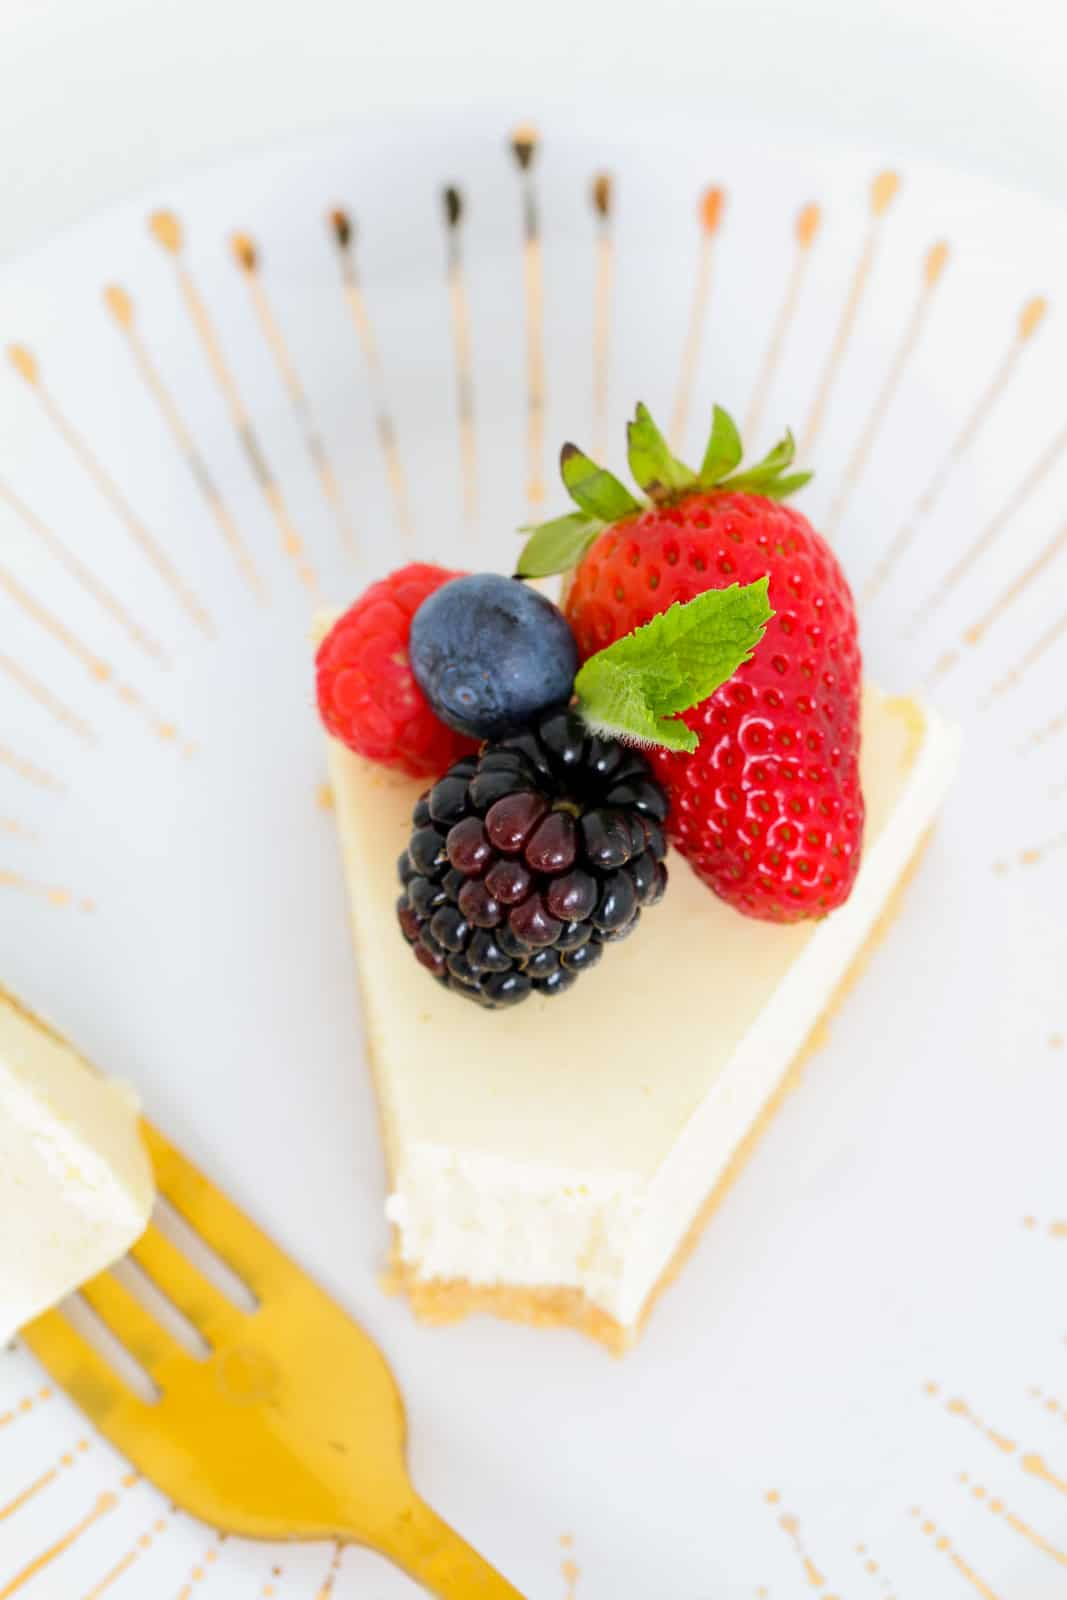 An overhead shot of a piece of white cheesecake with berries on top.